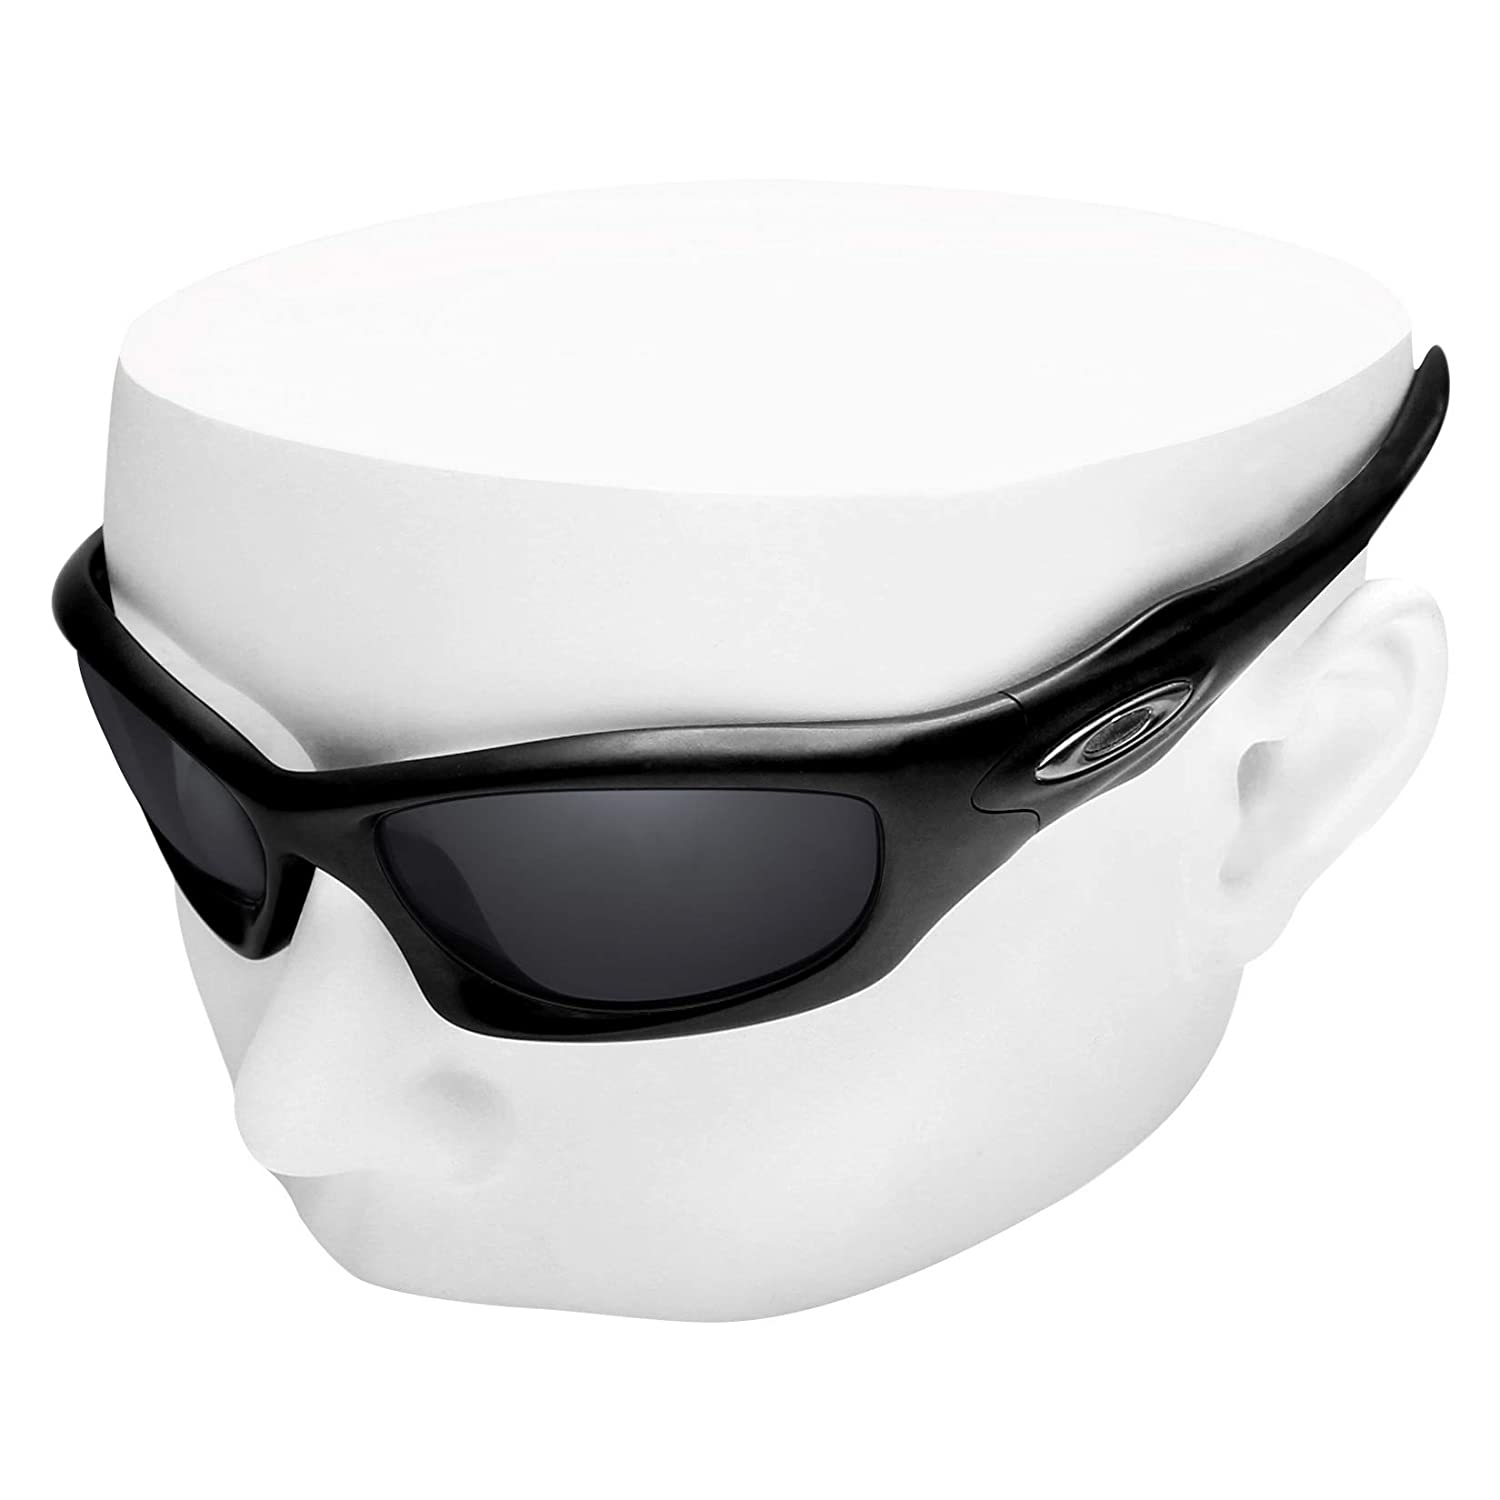 2e7a127e32 Amazon.com  OOWLIT Replacement Lenses Compatible with Oakley Monster Dog  Sunglass Black Non-polarized  Clothing